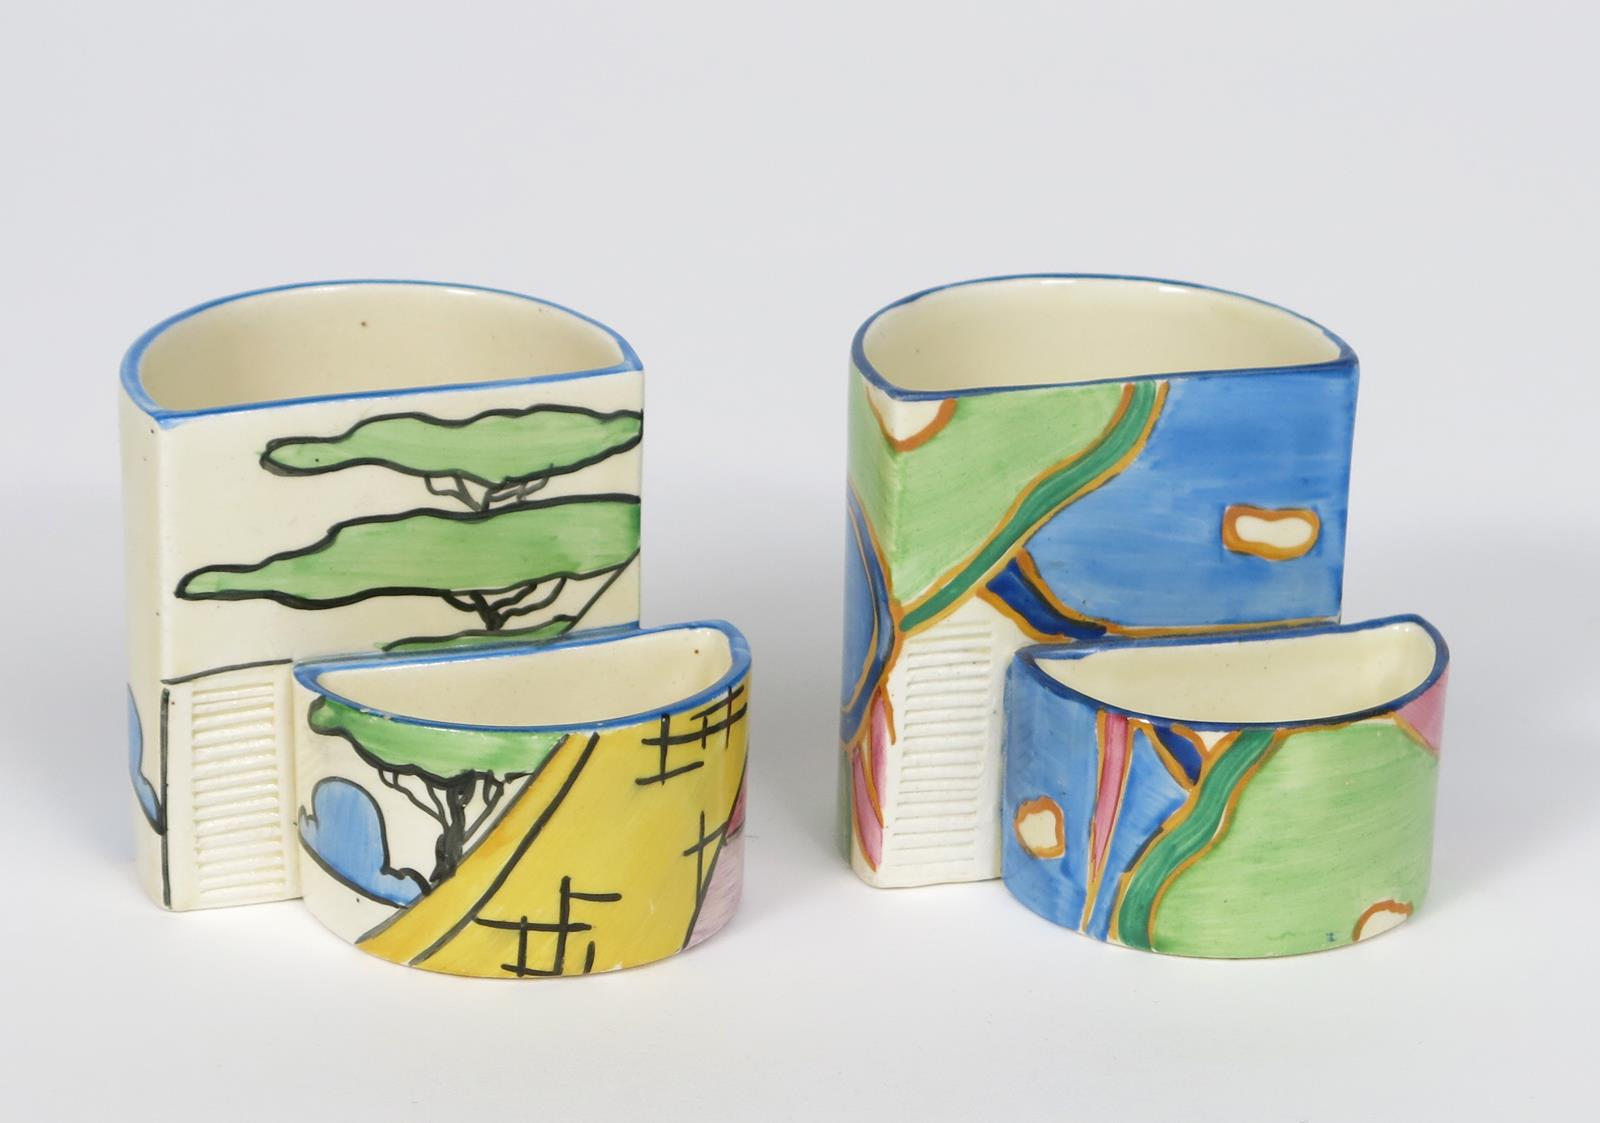 'Pink Roof Cottage' a Clarice Cliff Fantasque Bizarre 463 Cigarette and match holder, painted in